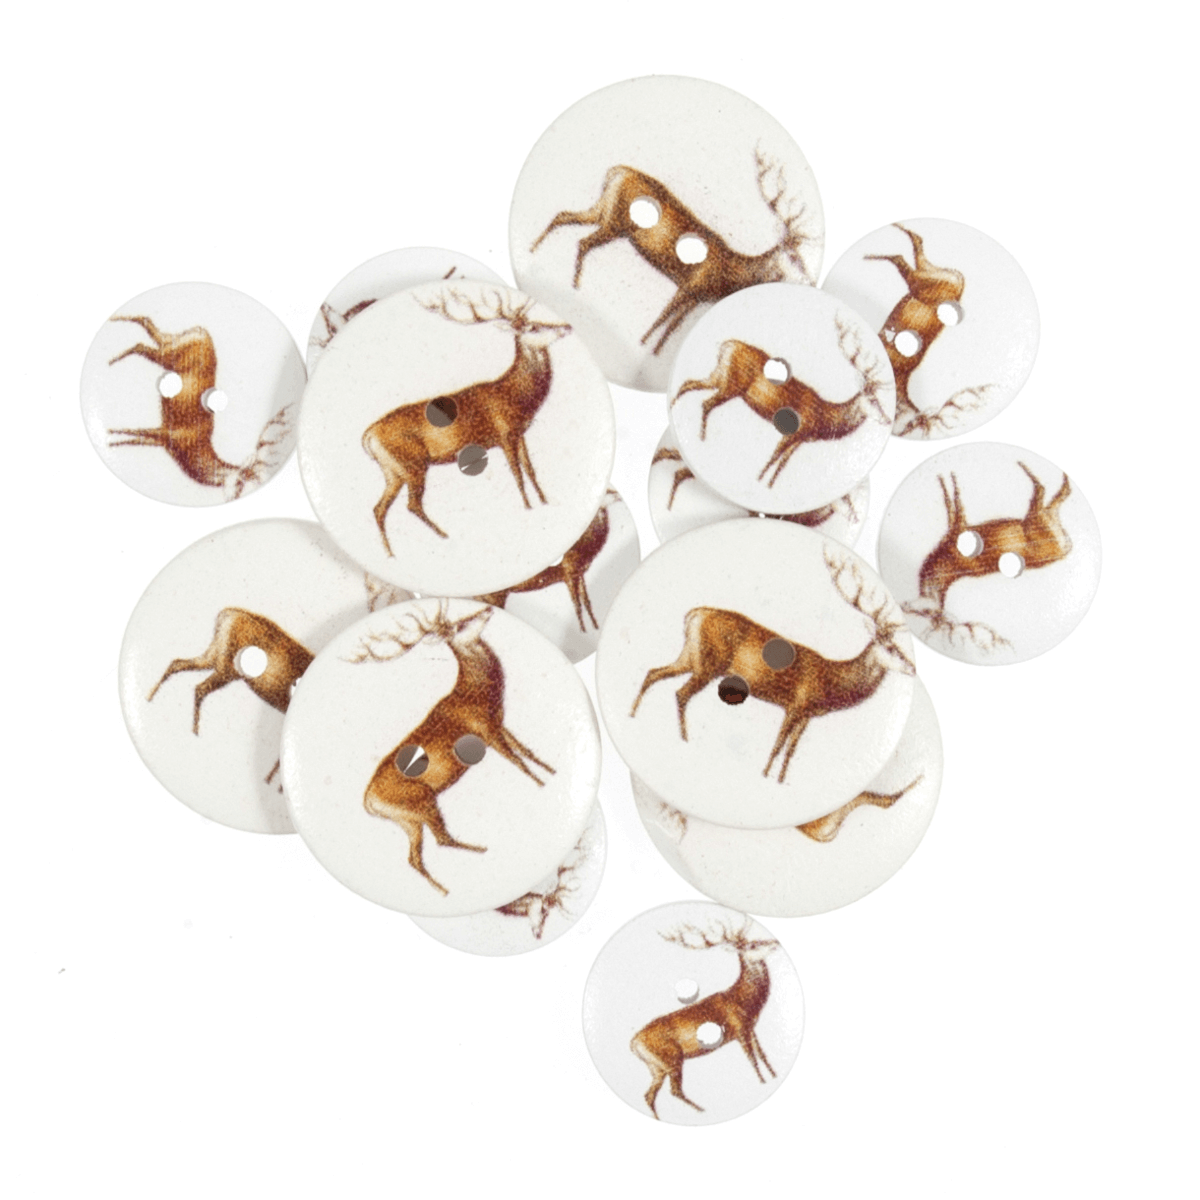 Assorted Standing Deer Wooden Buttons 15 Pack Sizes From 15mm - 25mm